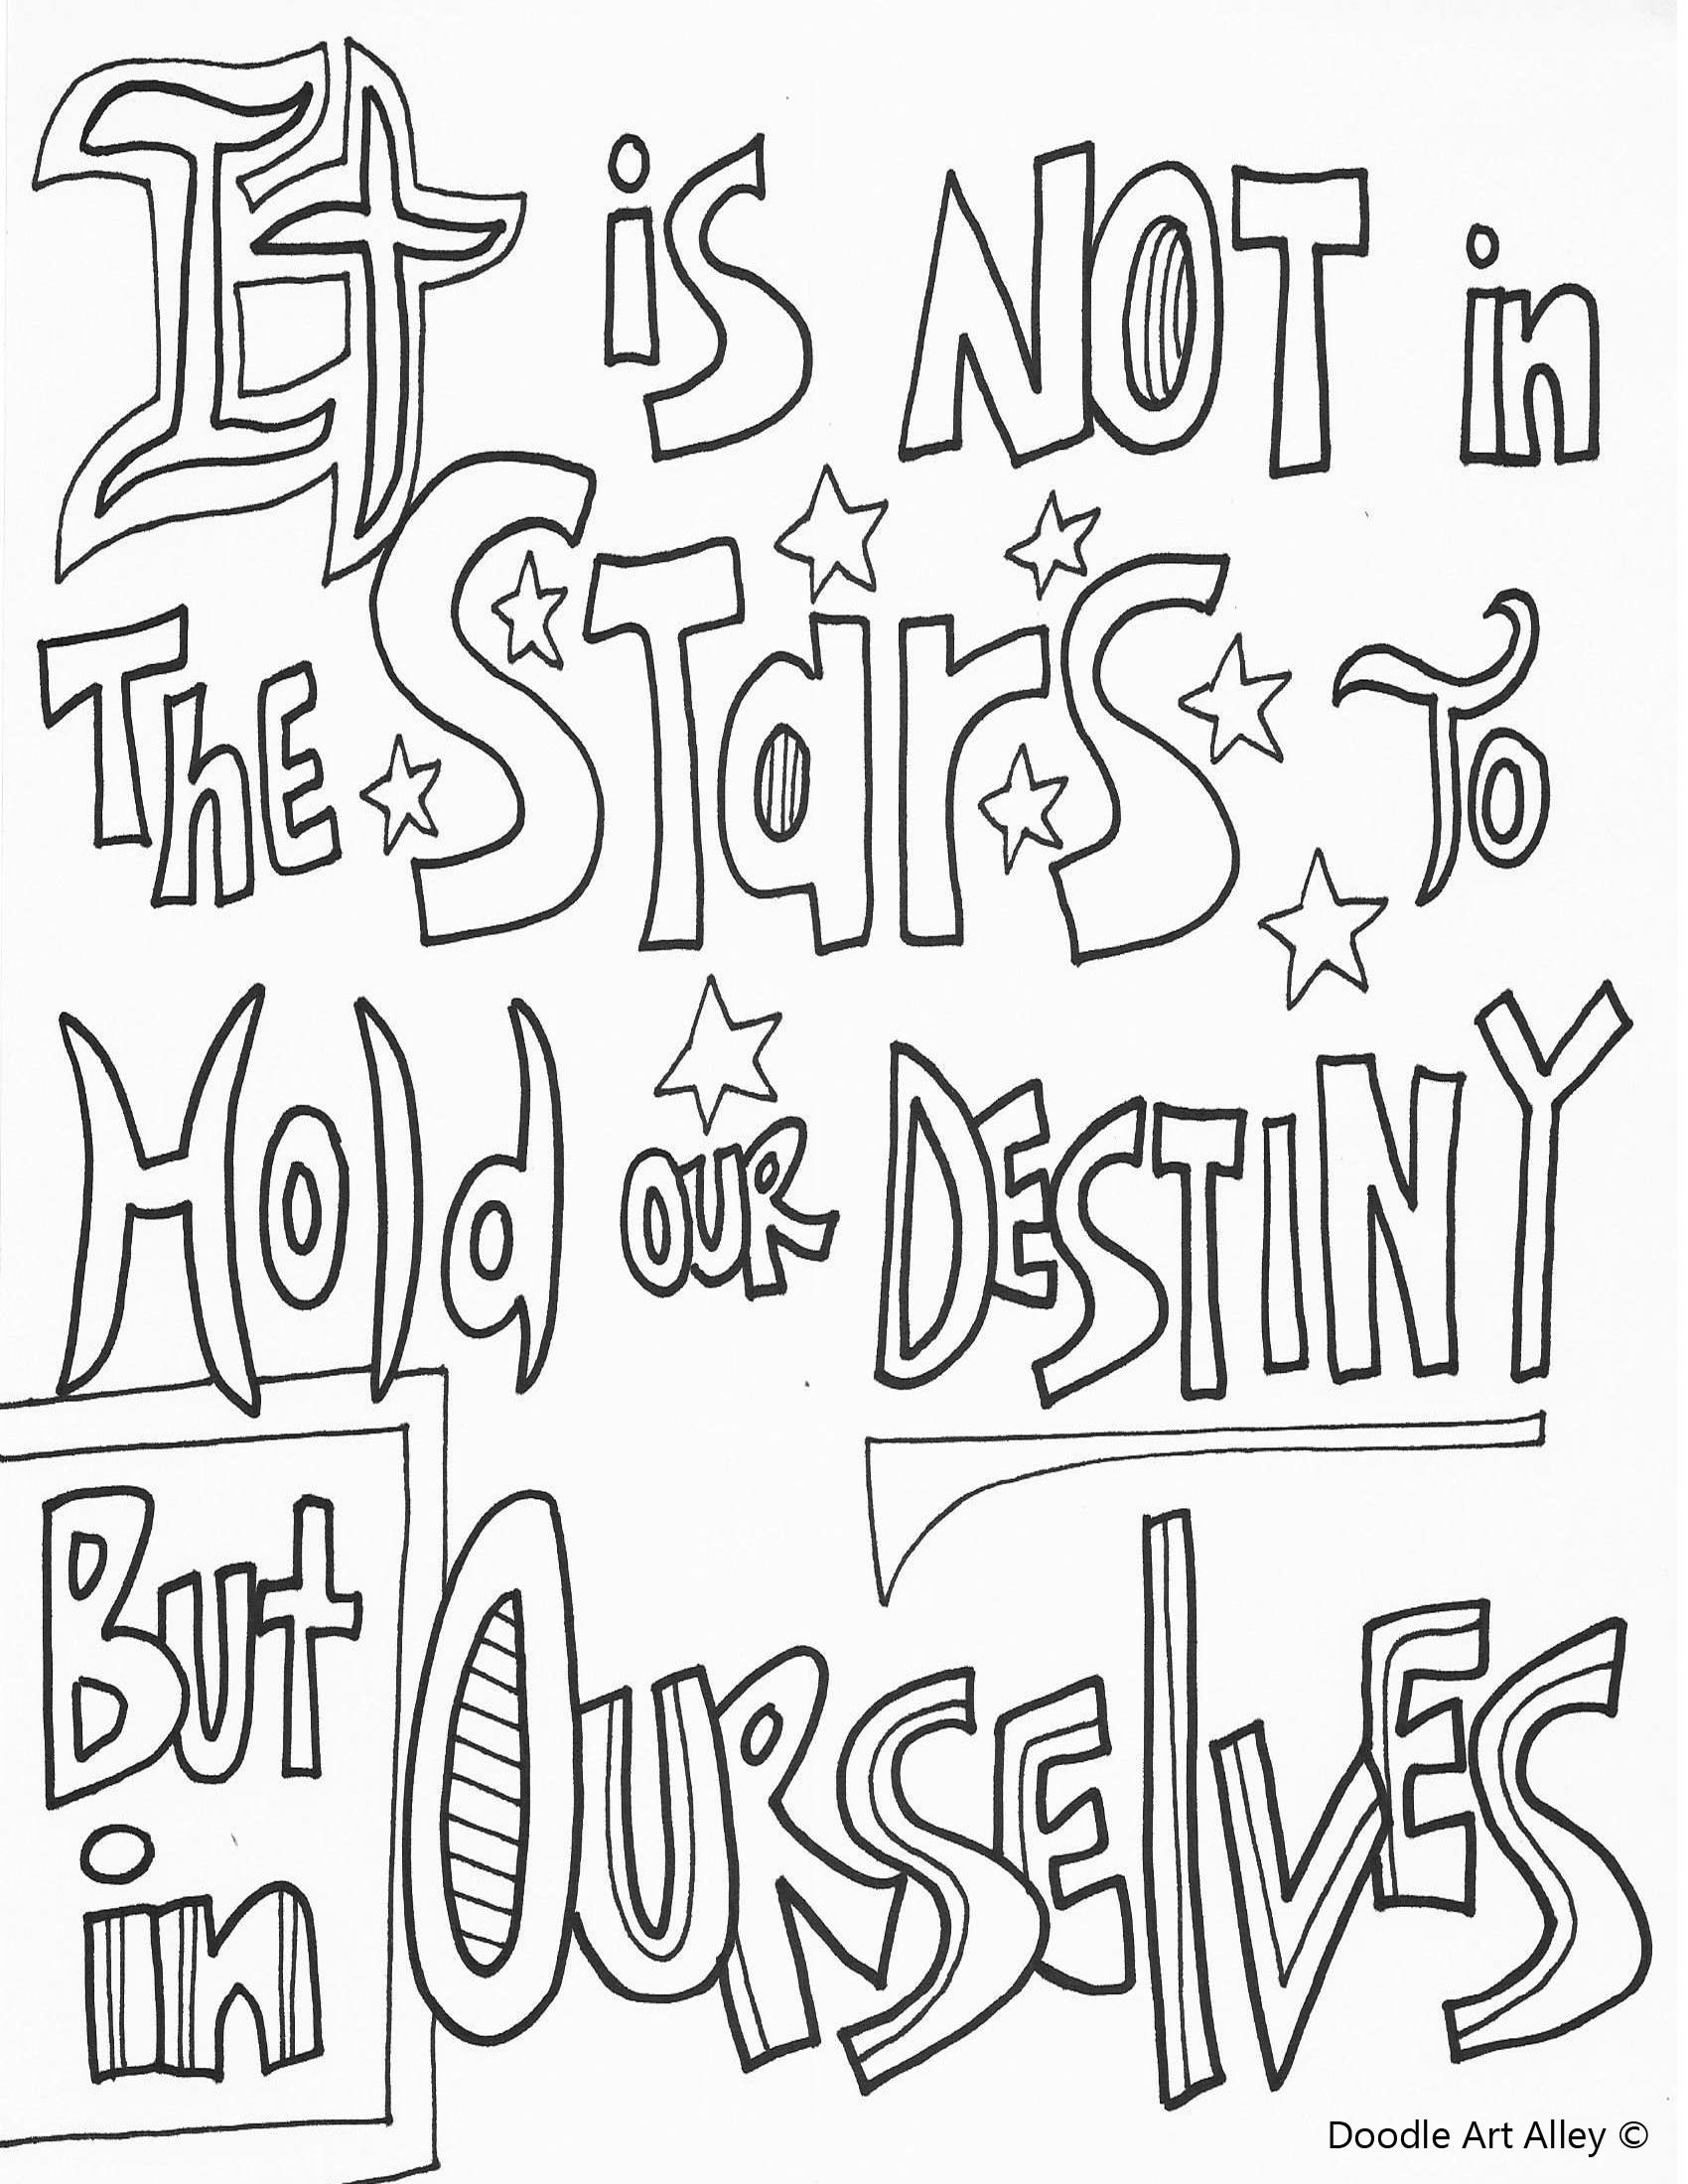 Shakespeare Quote Coloring Pages Coloring Pages Doodle Art